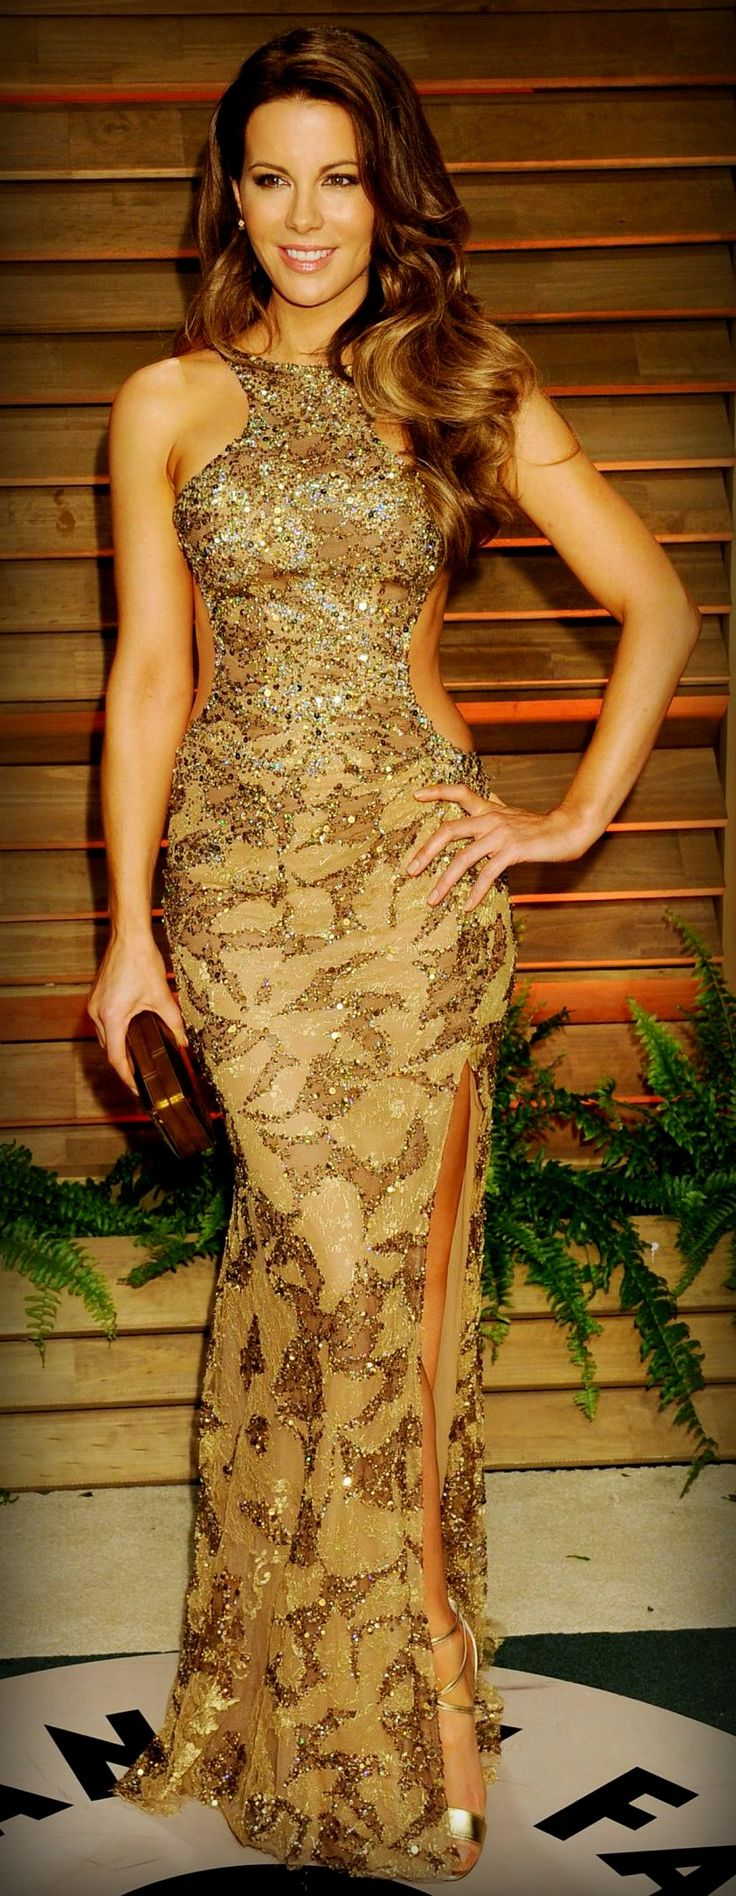 Kate Beckinsale is wearing an Elie Saab dress, Brian Atwood shoes, a Rauwolf clutch, and H. Stern earrings.